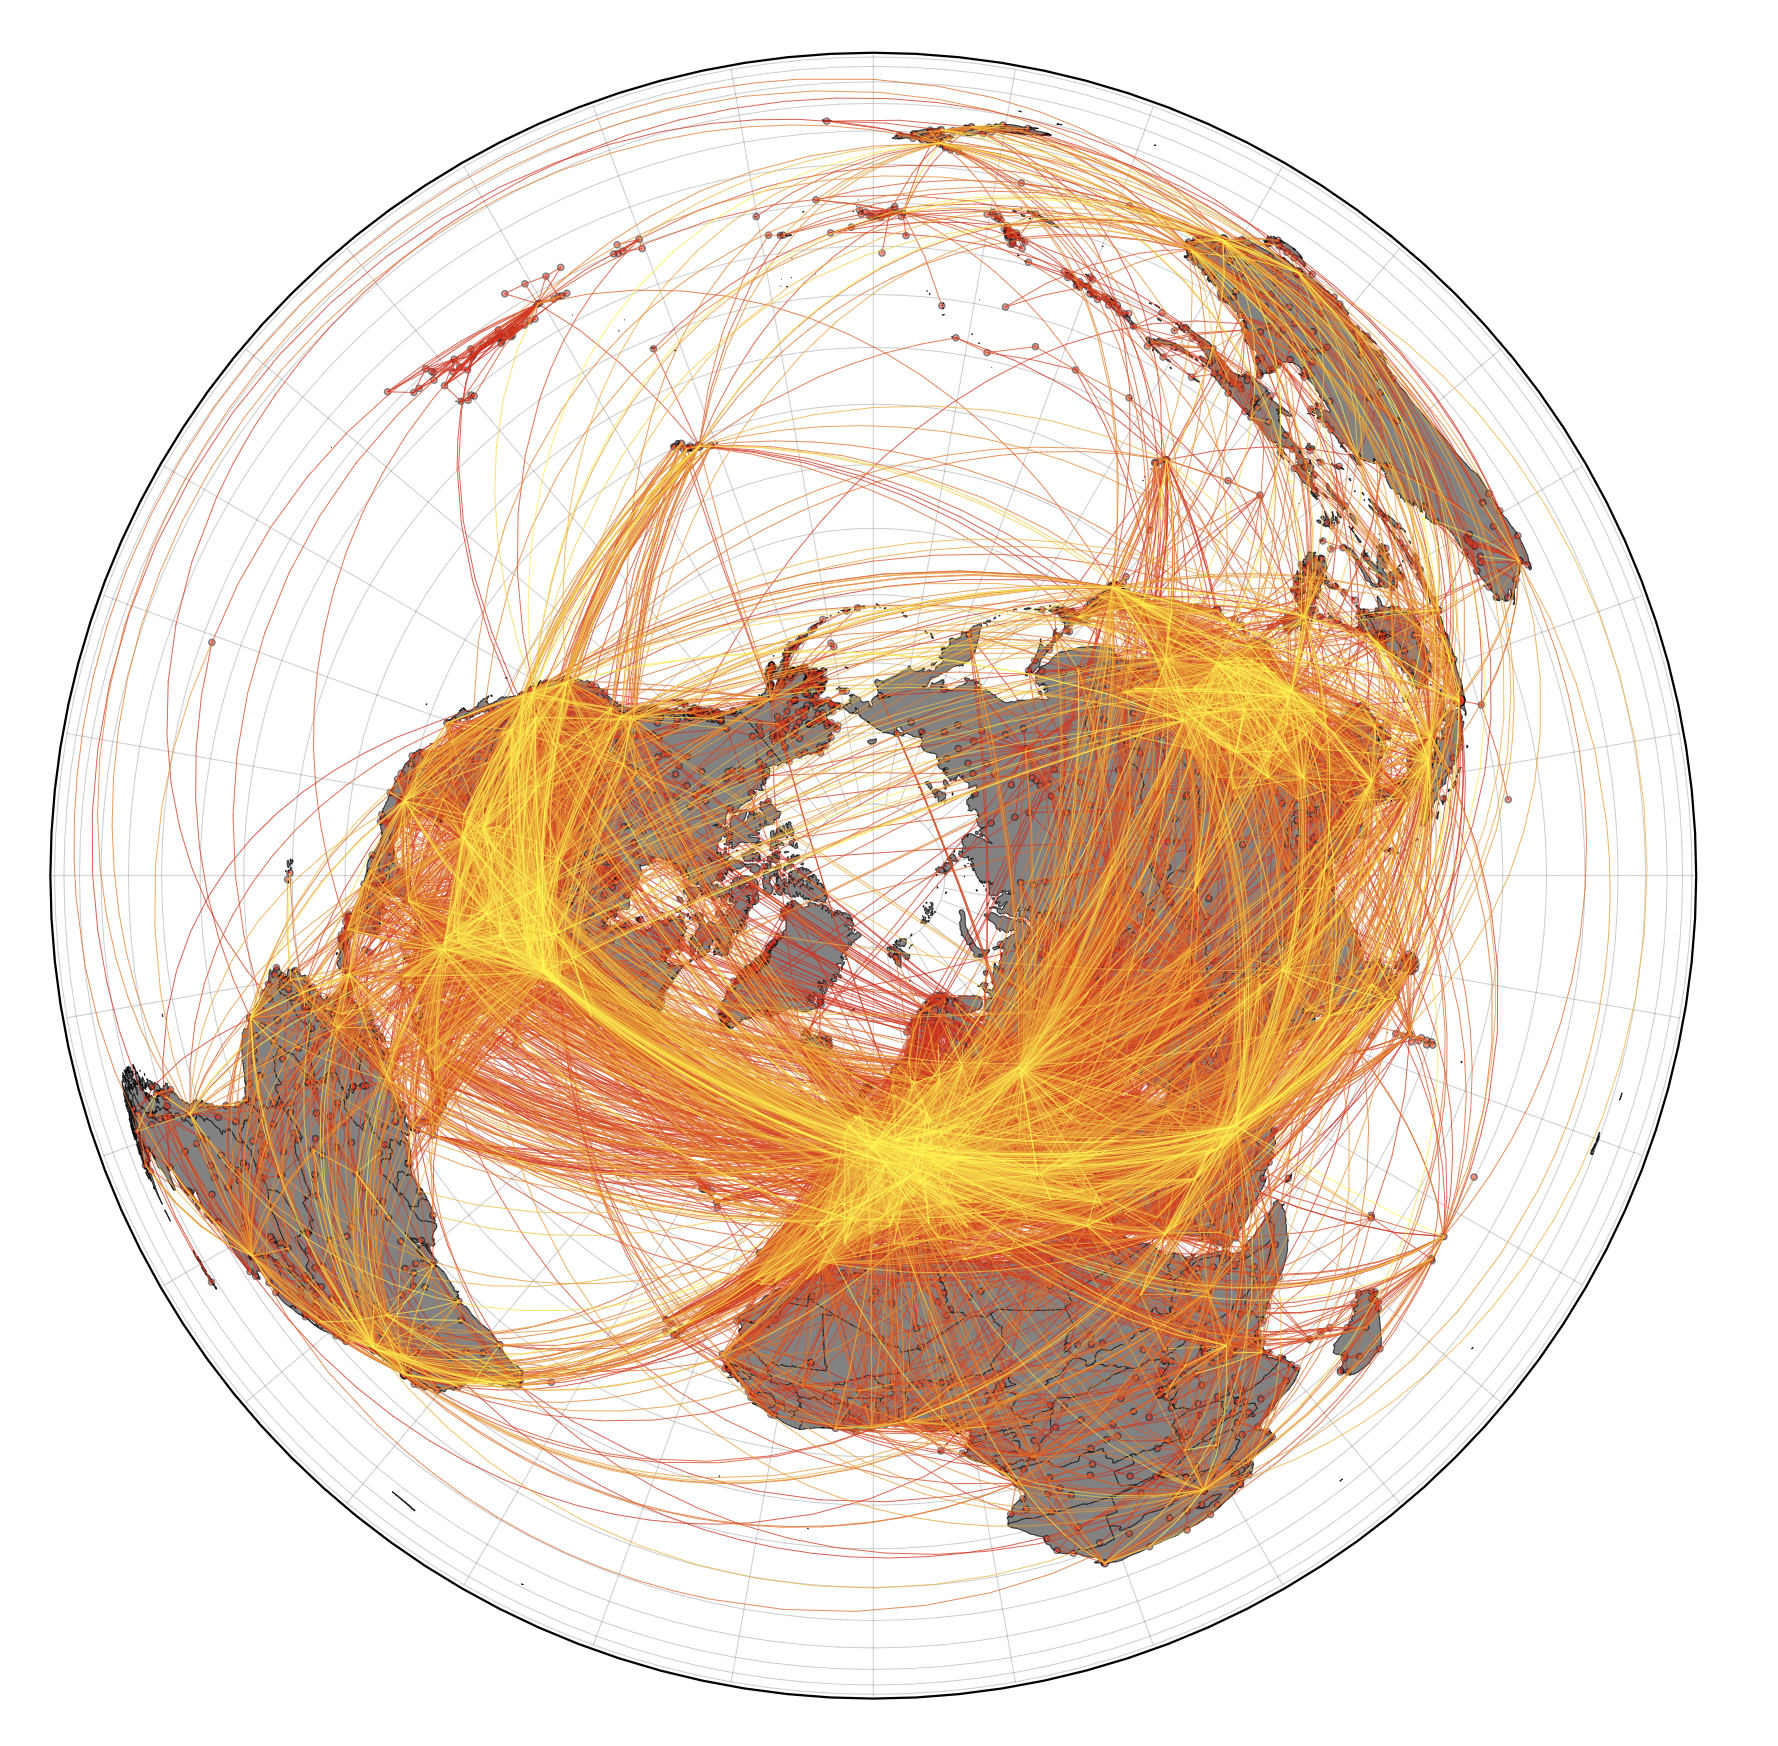 **Worldwide air transportation network.** This network of global mobility is the foundation of the computational model that predicts import risks, most probable spreading routes, and the importance of specific airports in the global dissemination of COVID-19.